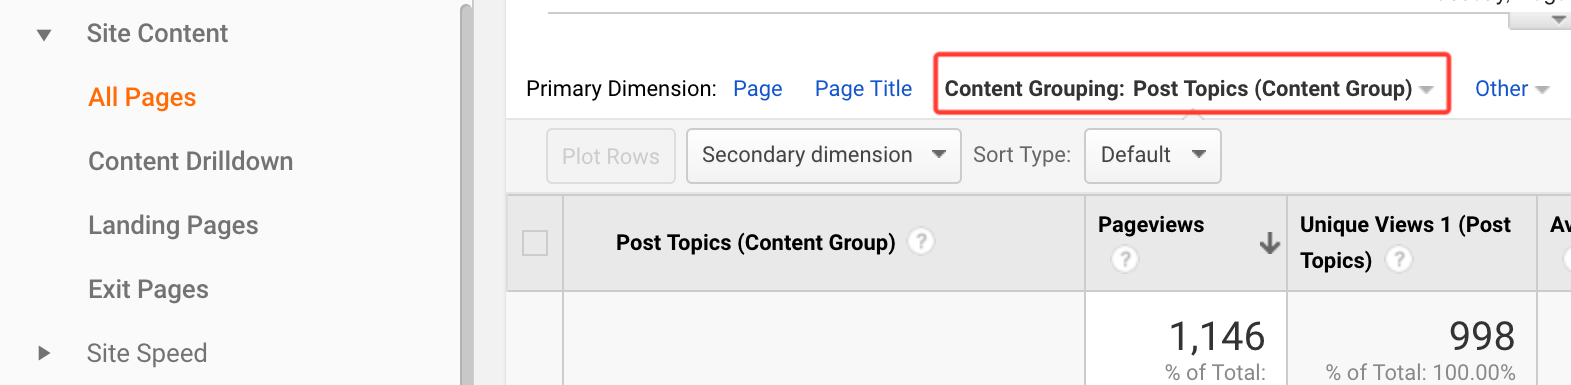 Site content reports content grouping